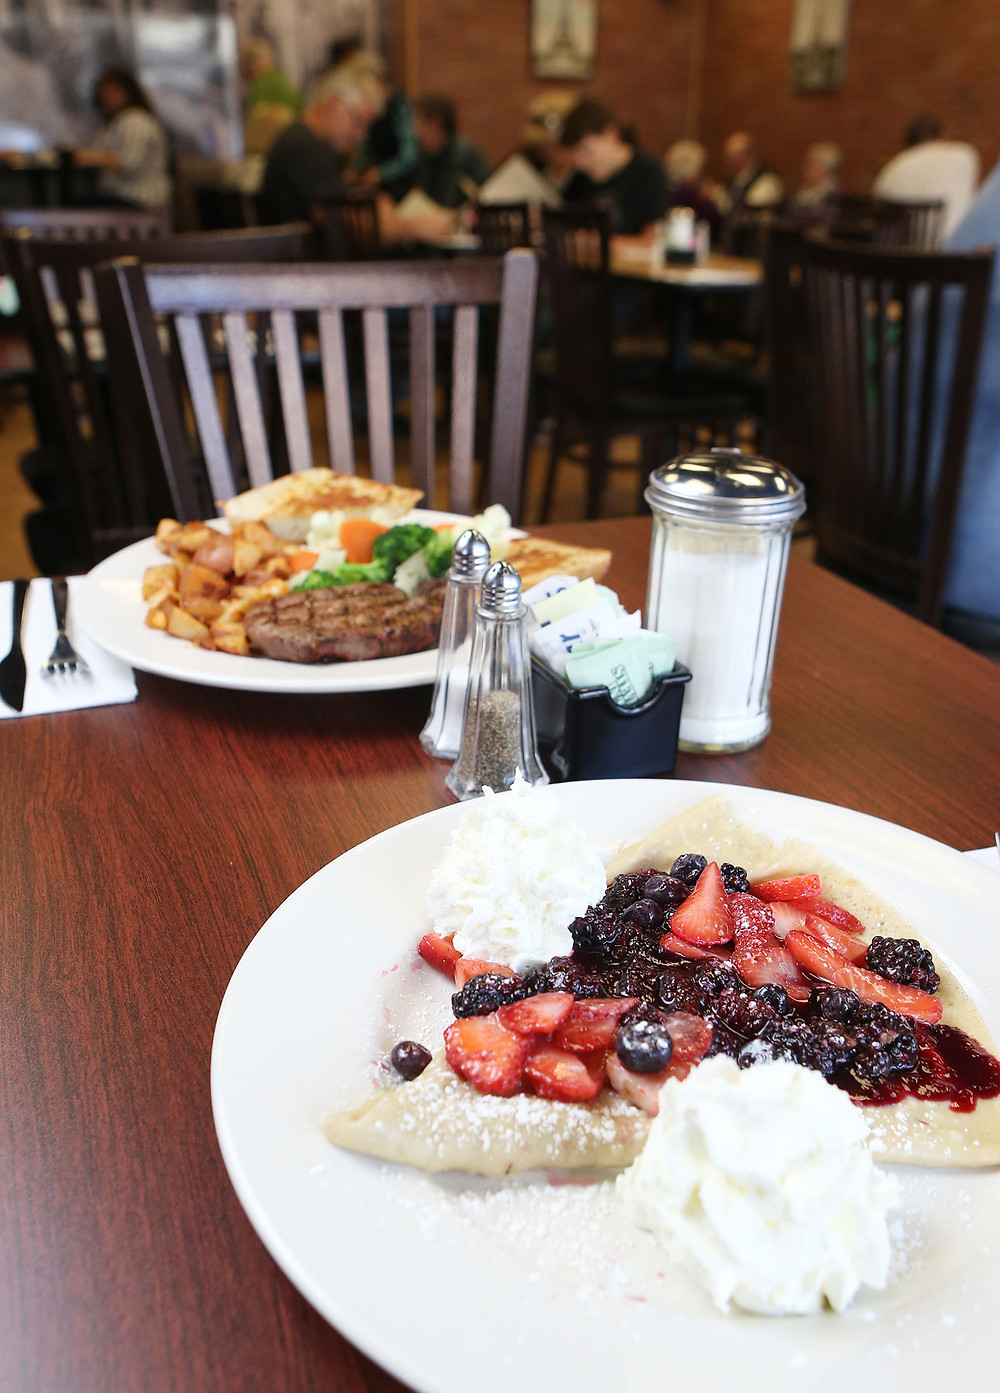 Berry crepes (foreground) and a steak dinner (back) at Eiffel Grill in McMinnville.